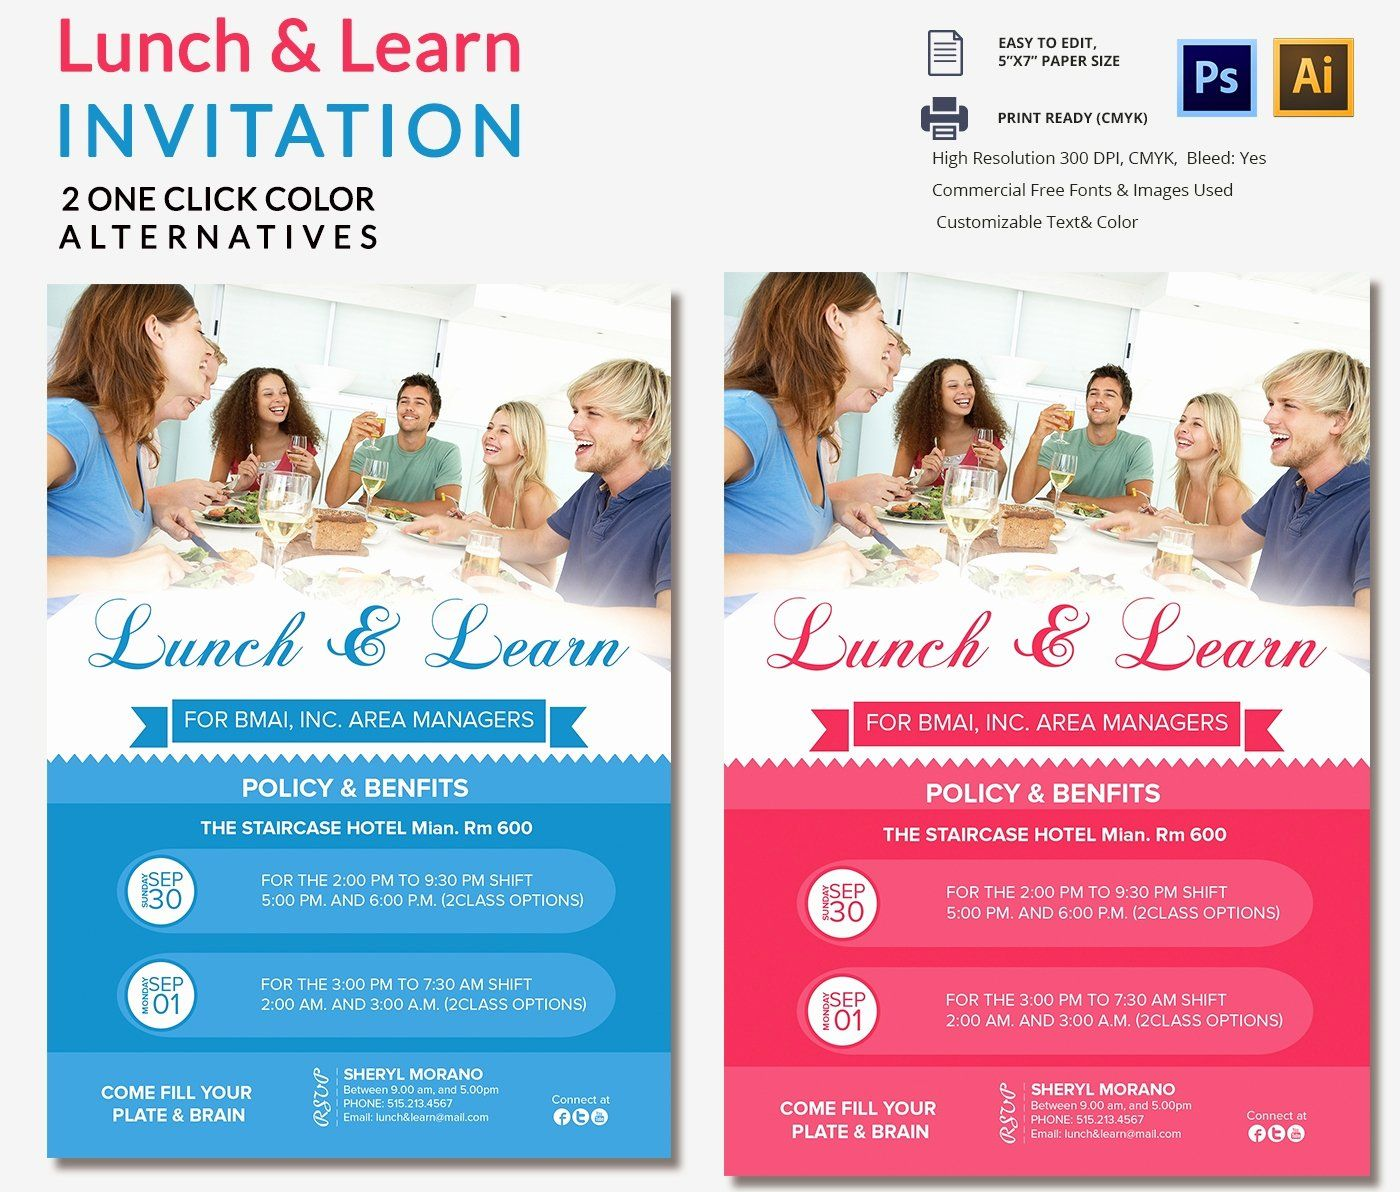 Lunch And Learn Invite Template Lovely Lunch Invitation Template 25 Free Psd Pdf Documents Lunch Invitation Invitation Template Party Invite Template Lunch and learn invitation template